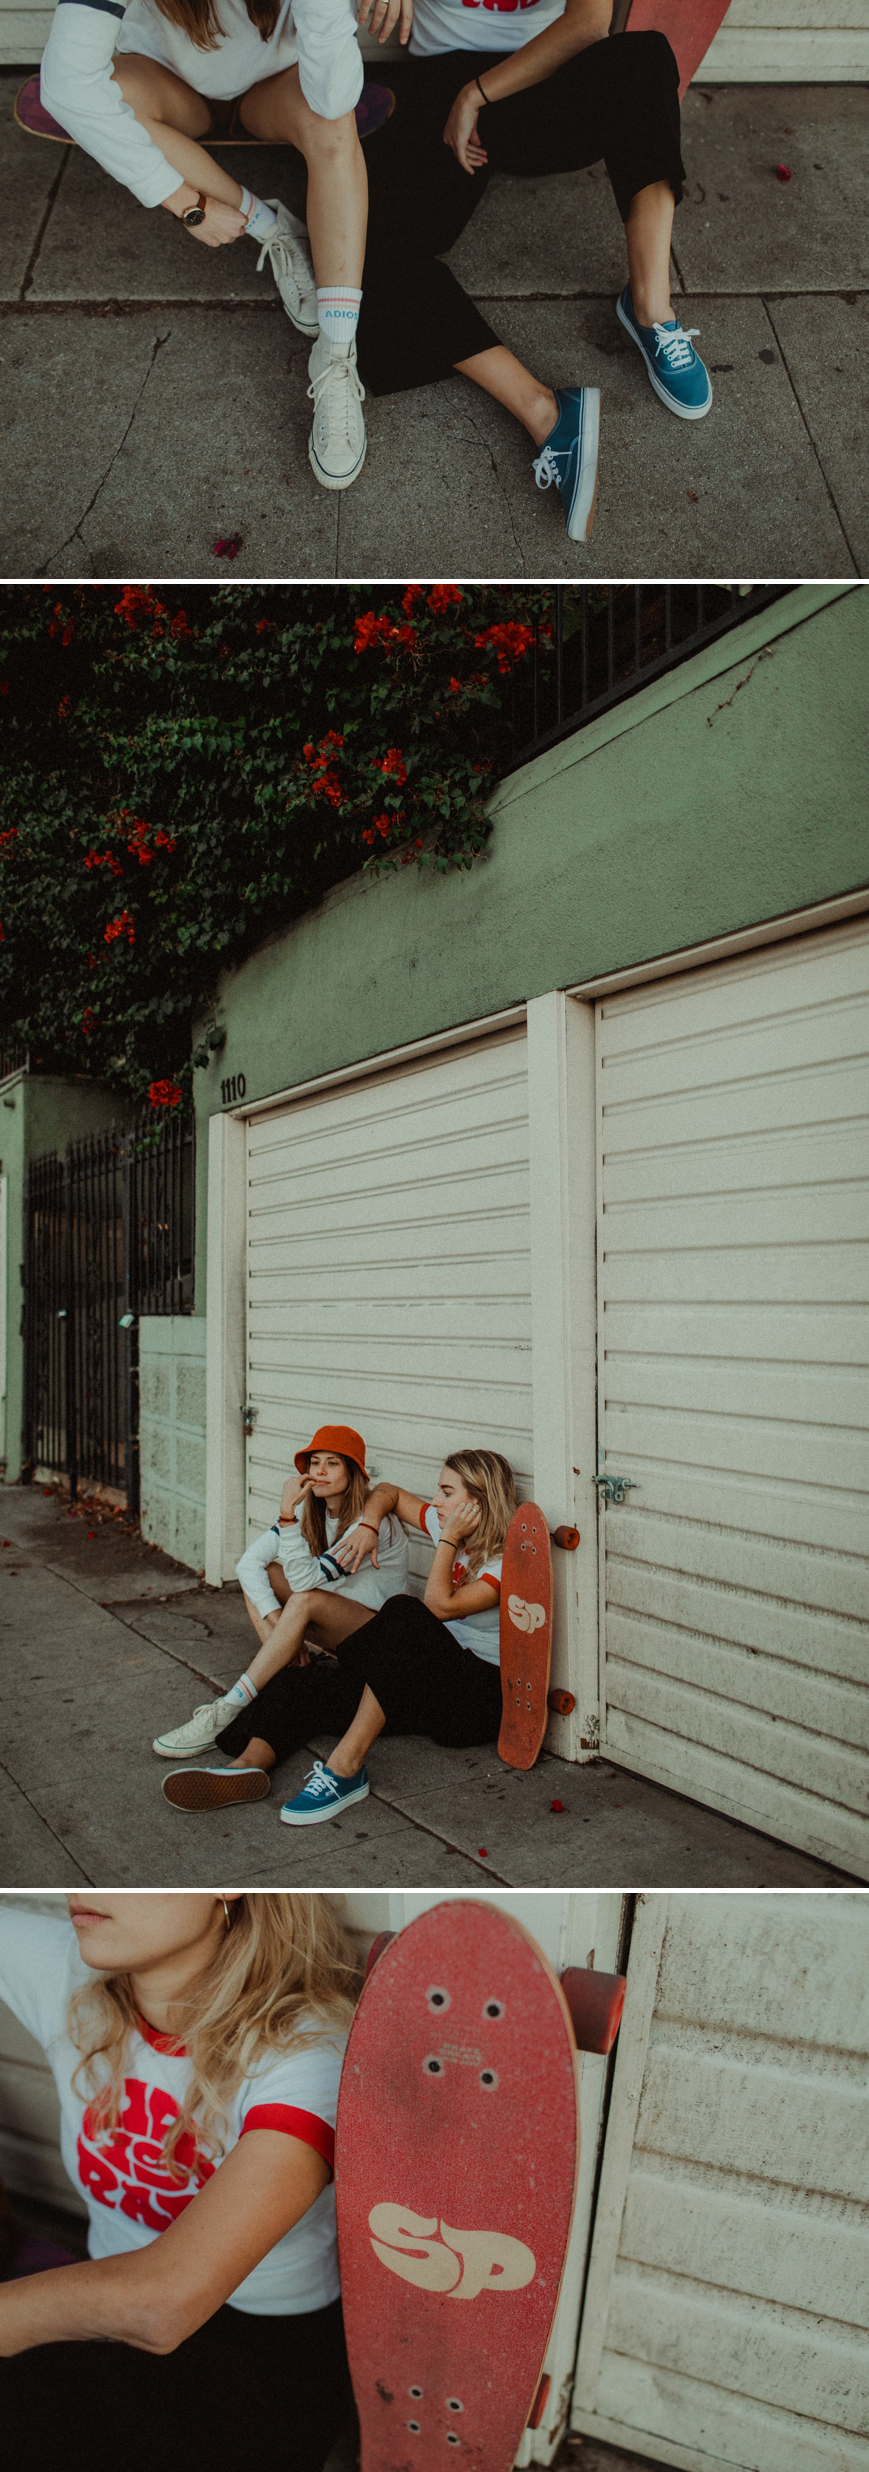 California Wedding Photographers Los Angeles Engagement Photographer Atlanta Elopement Photography_ Skateboard Photography Sierra Prescott  __ Atalie Ann Photo _1040.jpg